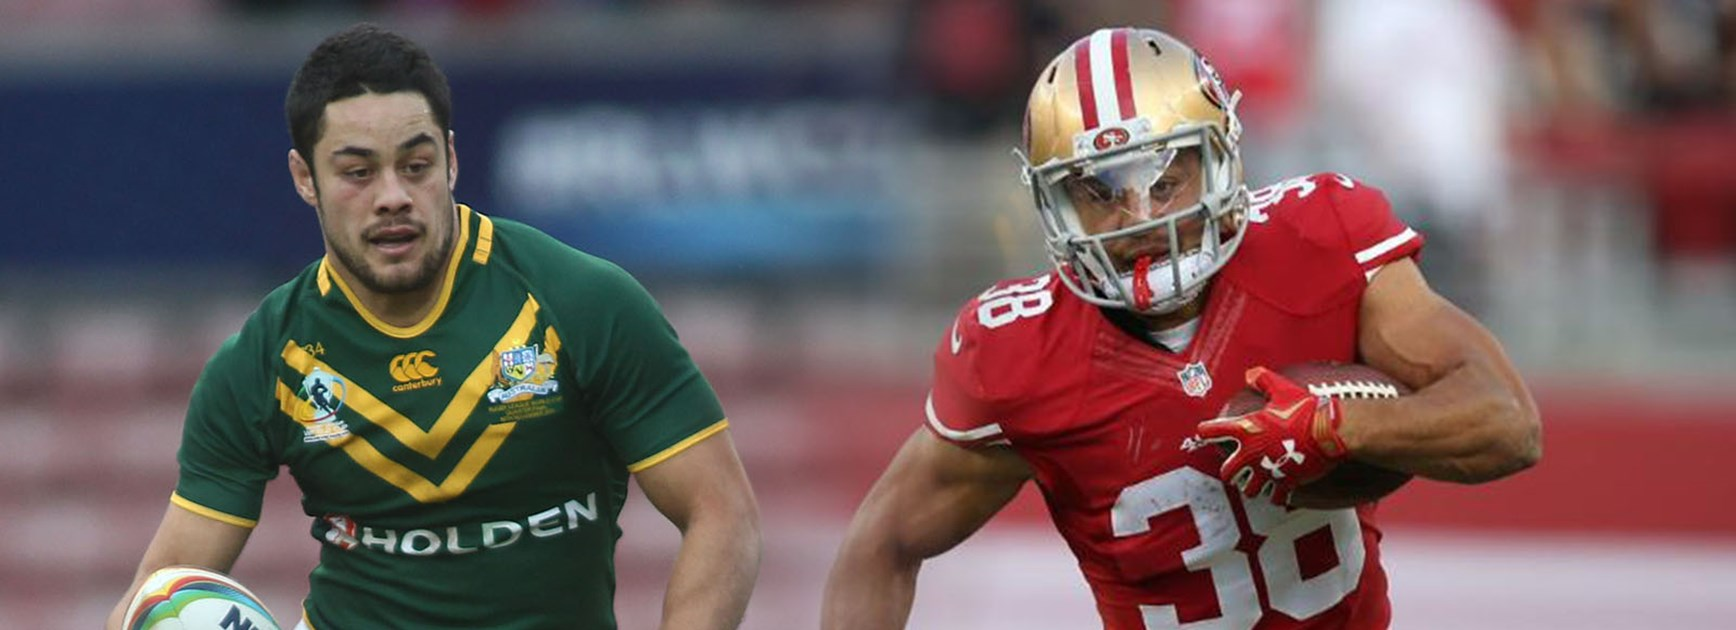 From the NRL to the NFL. Jarryd Hayne has chased his dream and succeeded with a contract at the 49ers.